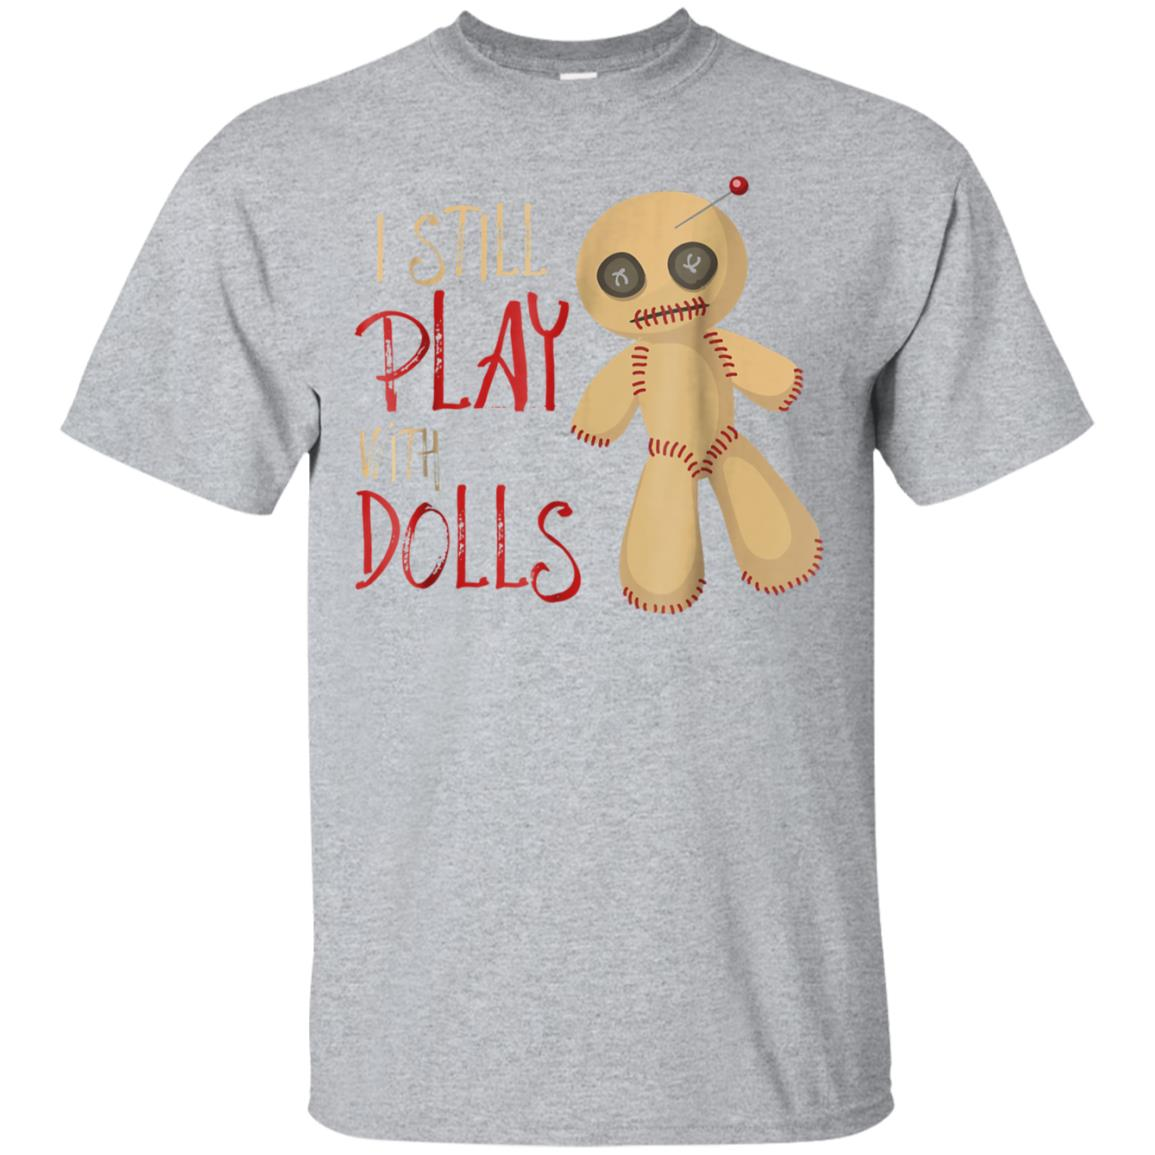 I Still Play With Dolls Funny Halloween T-Shirt Voodoo Gift 99promocode